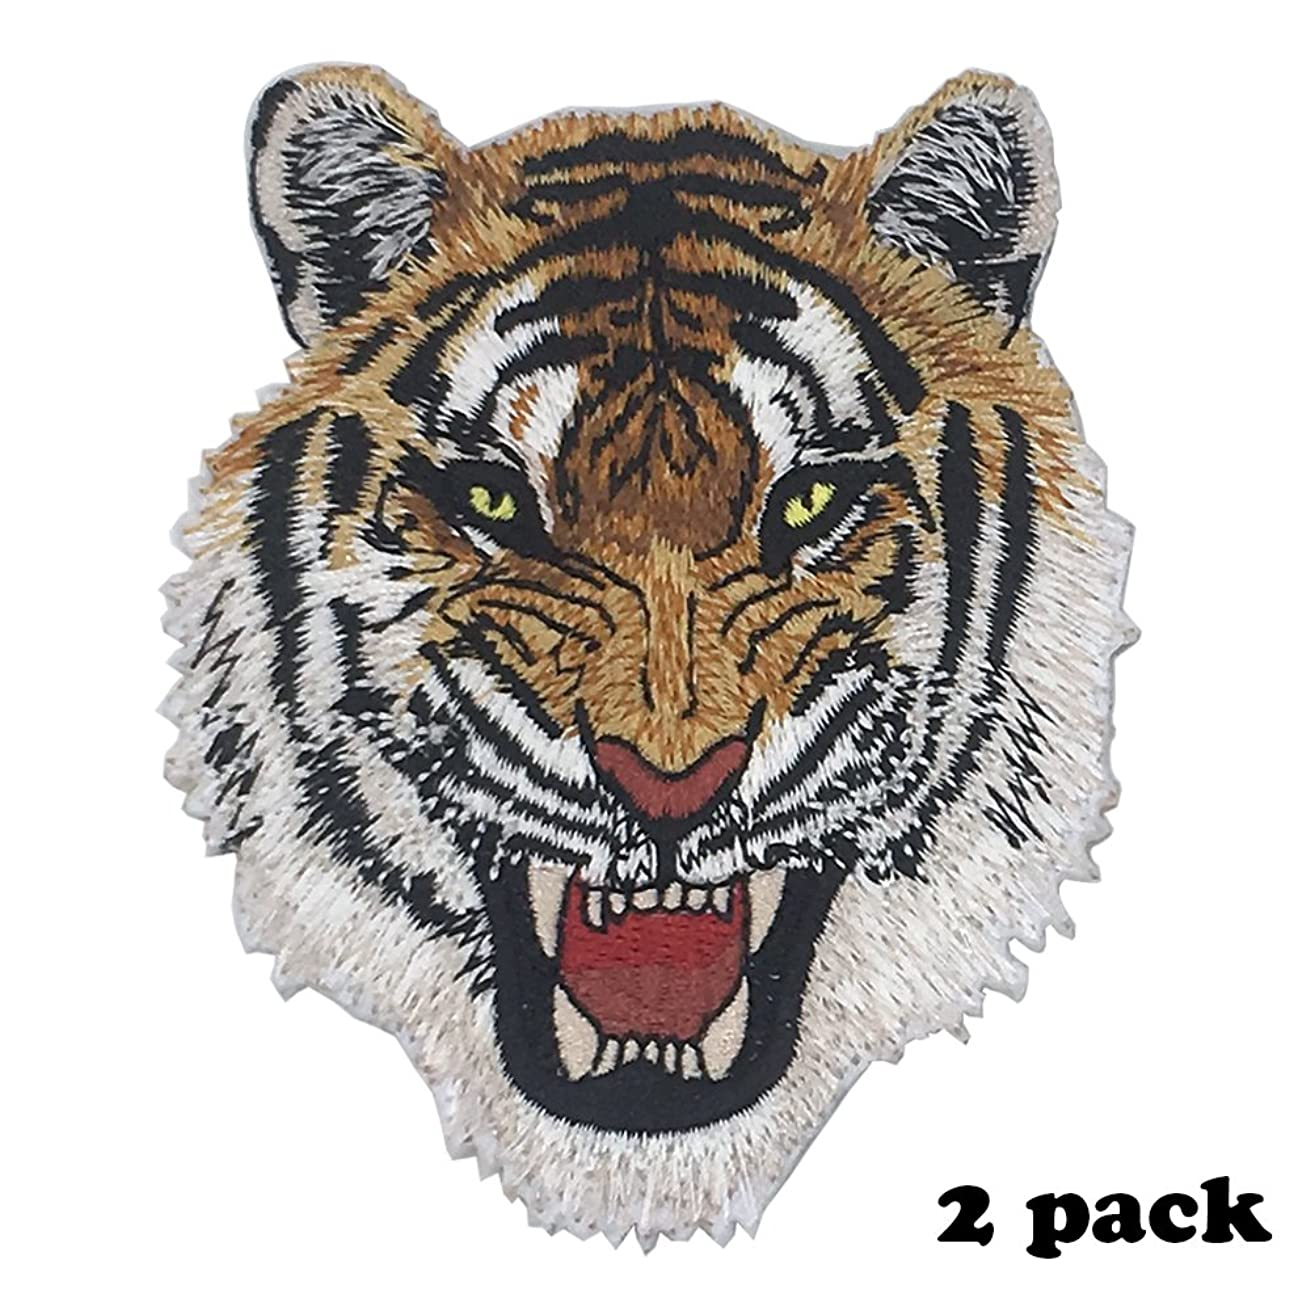 Iron On or Sew On Patches - Applique Embroidered Patches DIY Accessory Pack of 2 (FierceTiger)